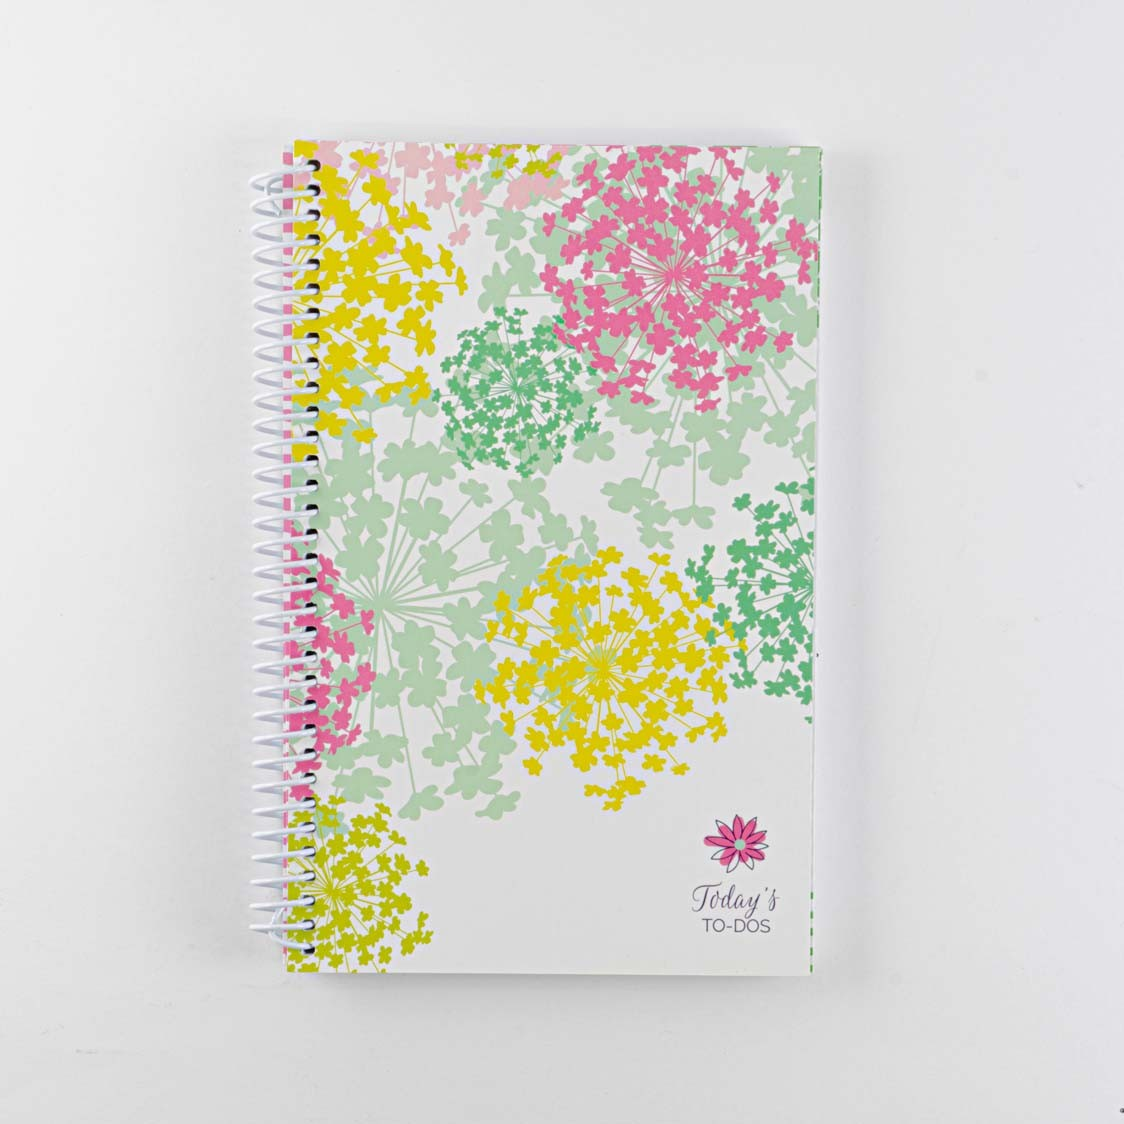 Bound To Do Book - Bloom Planner